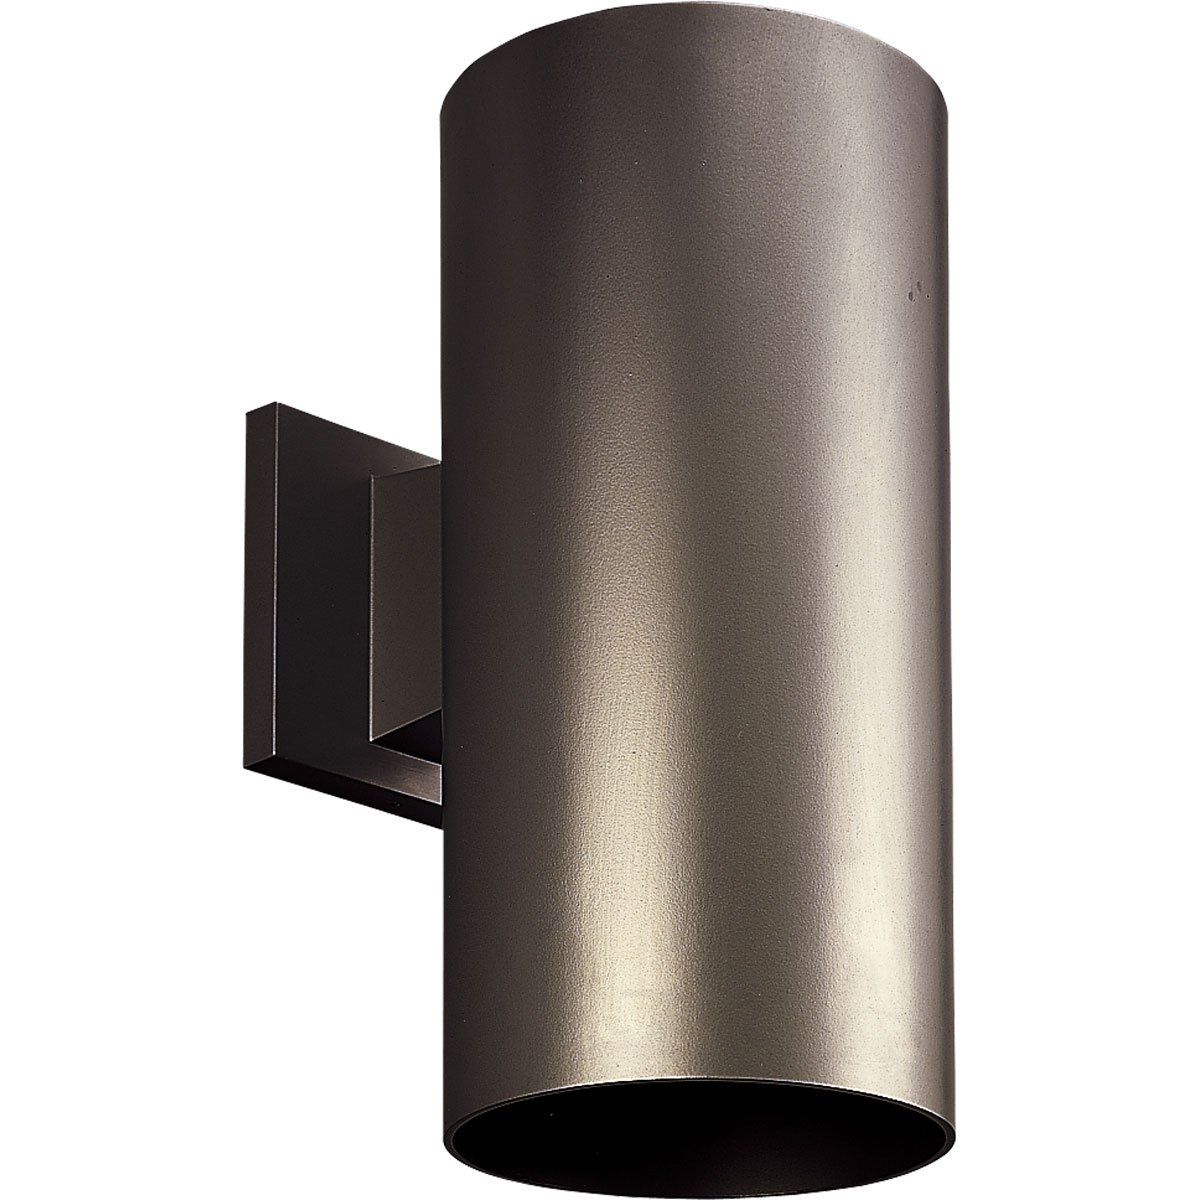 Progress Lighting P5641-20 6-Inch Cylinder with Heavy Duty Aluminum Construction and Die Cast Wall Bracket Powder Coated Finish UL Listed For Wet Locations, Antique Bronze